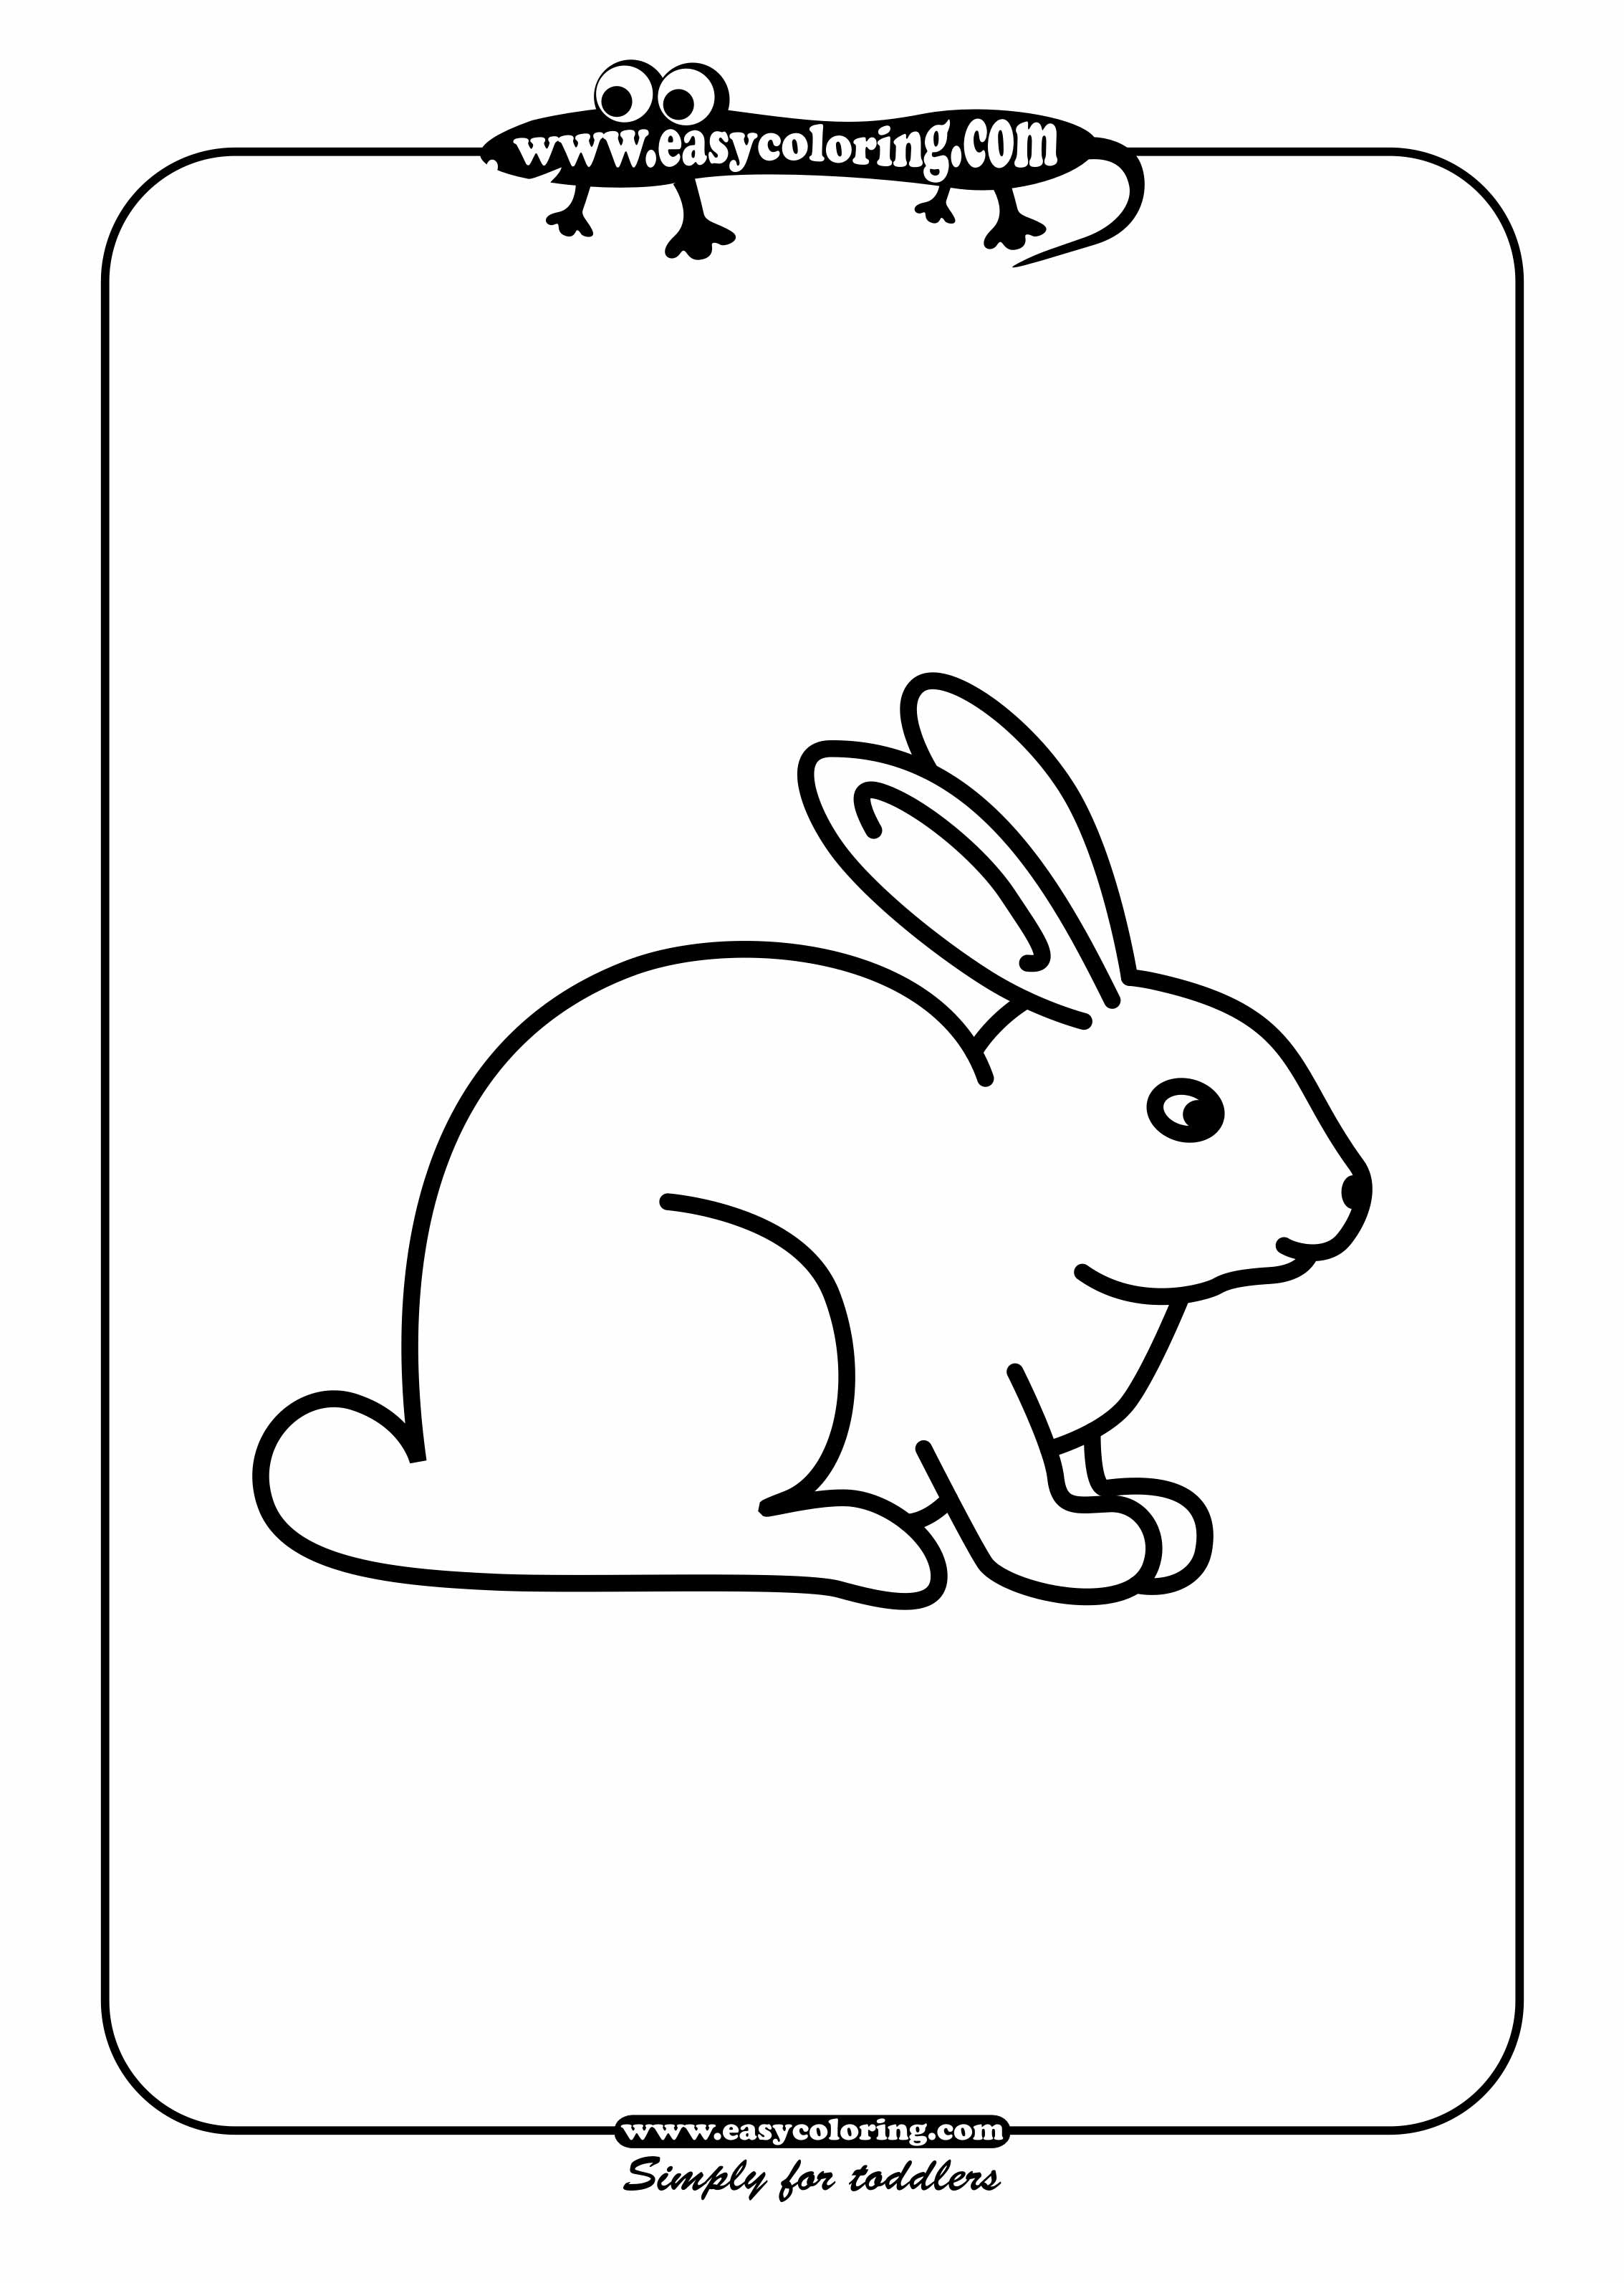 rabbit easy coloring animals - Easy Animal Coloring Pages